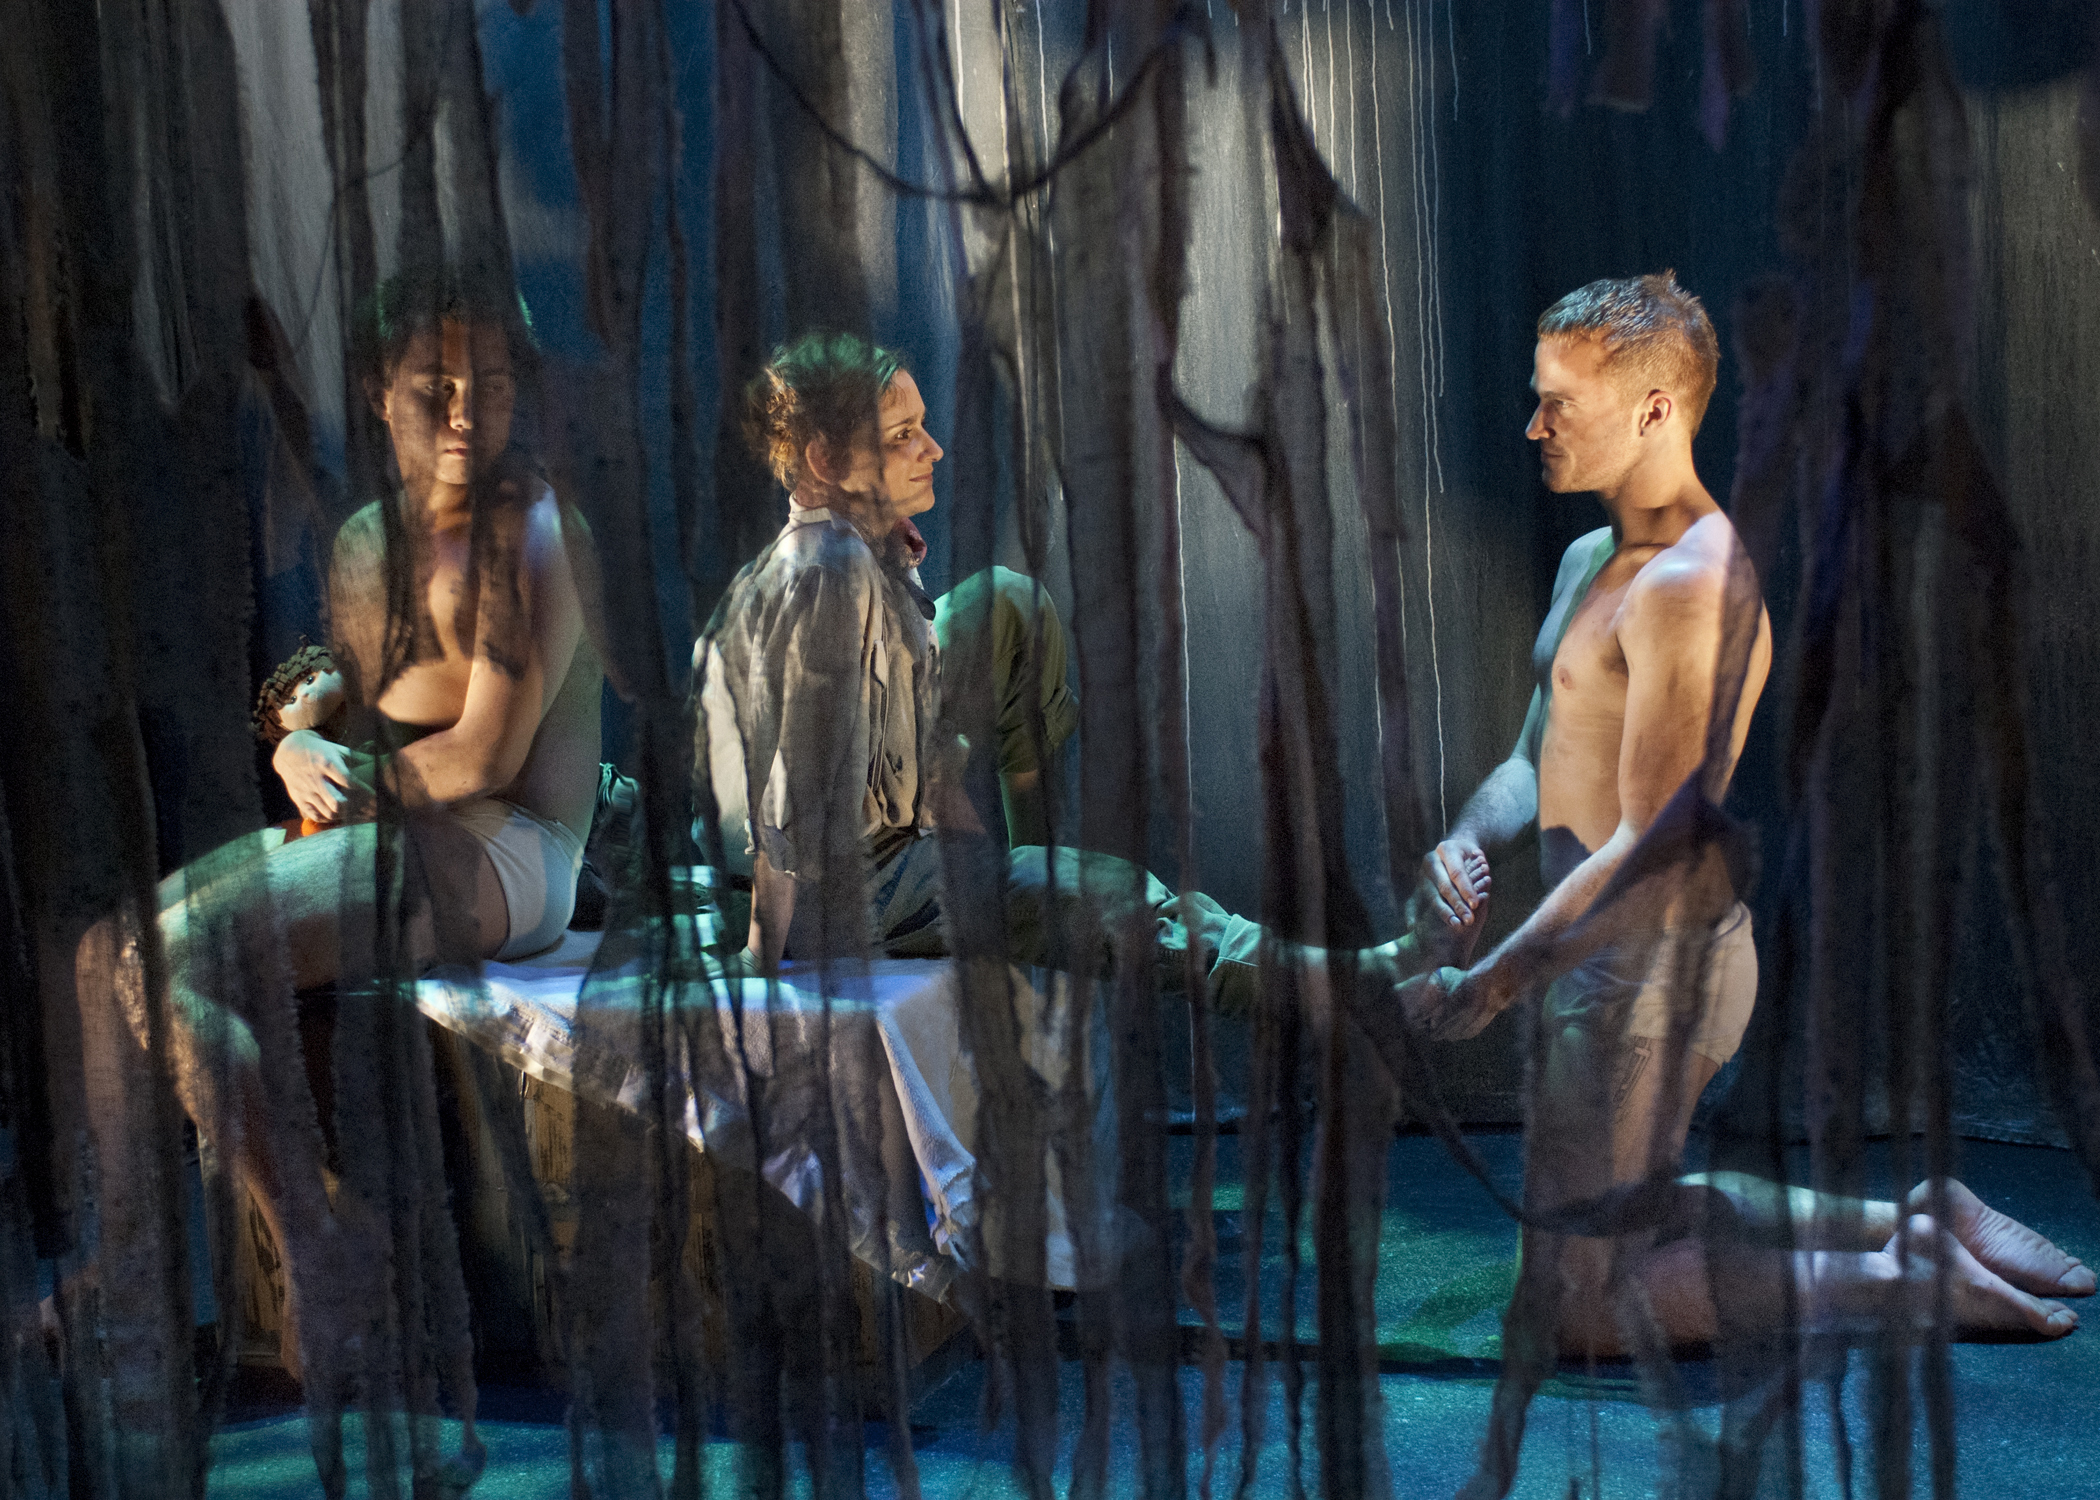 Costume     Design by Miriam Lewis, Lighting Design by Christian Mejia, Set Design by Kuo-Hao Lo, Sound Design by Josh Senick, Photography by Lois Tema.    Sal Mattos, Corinne Robkin, Evan Johson.